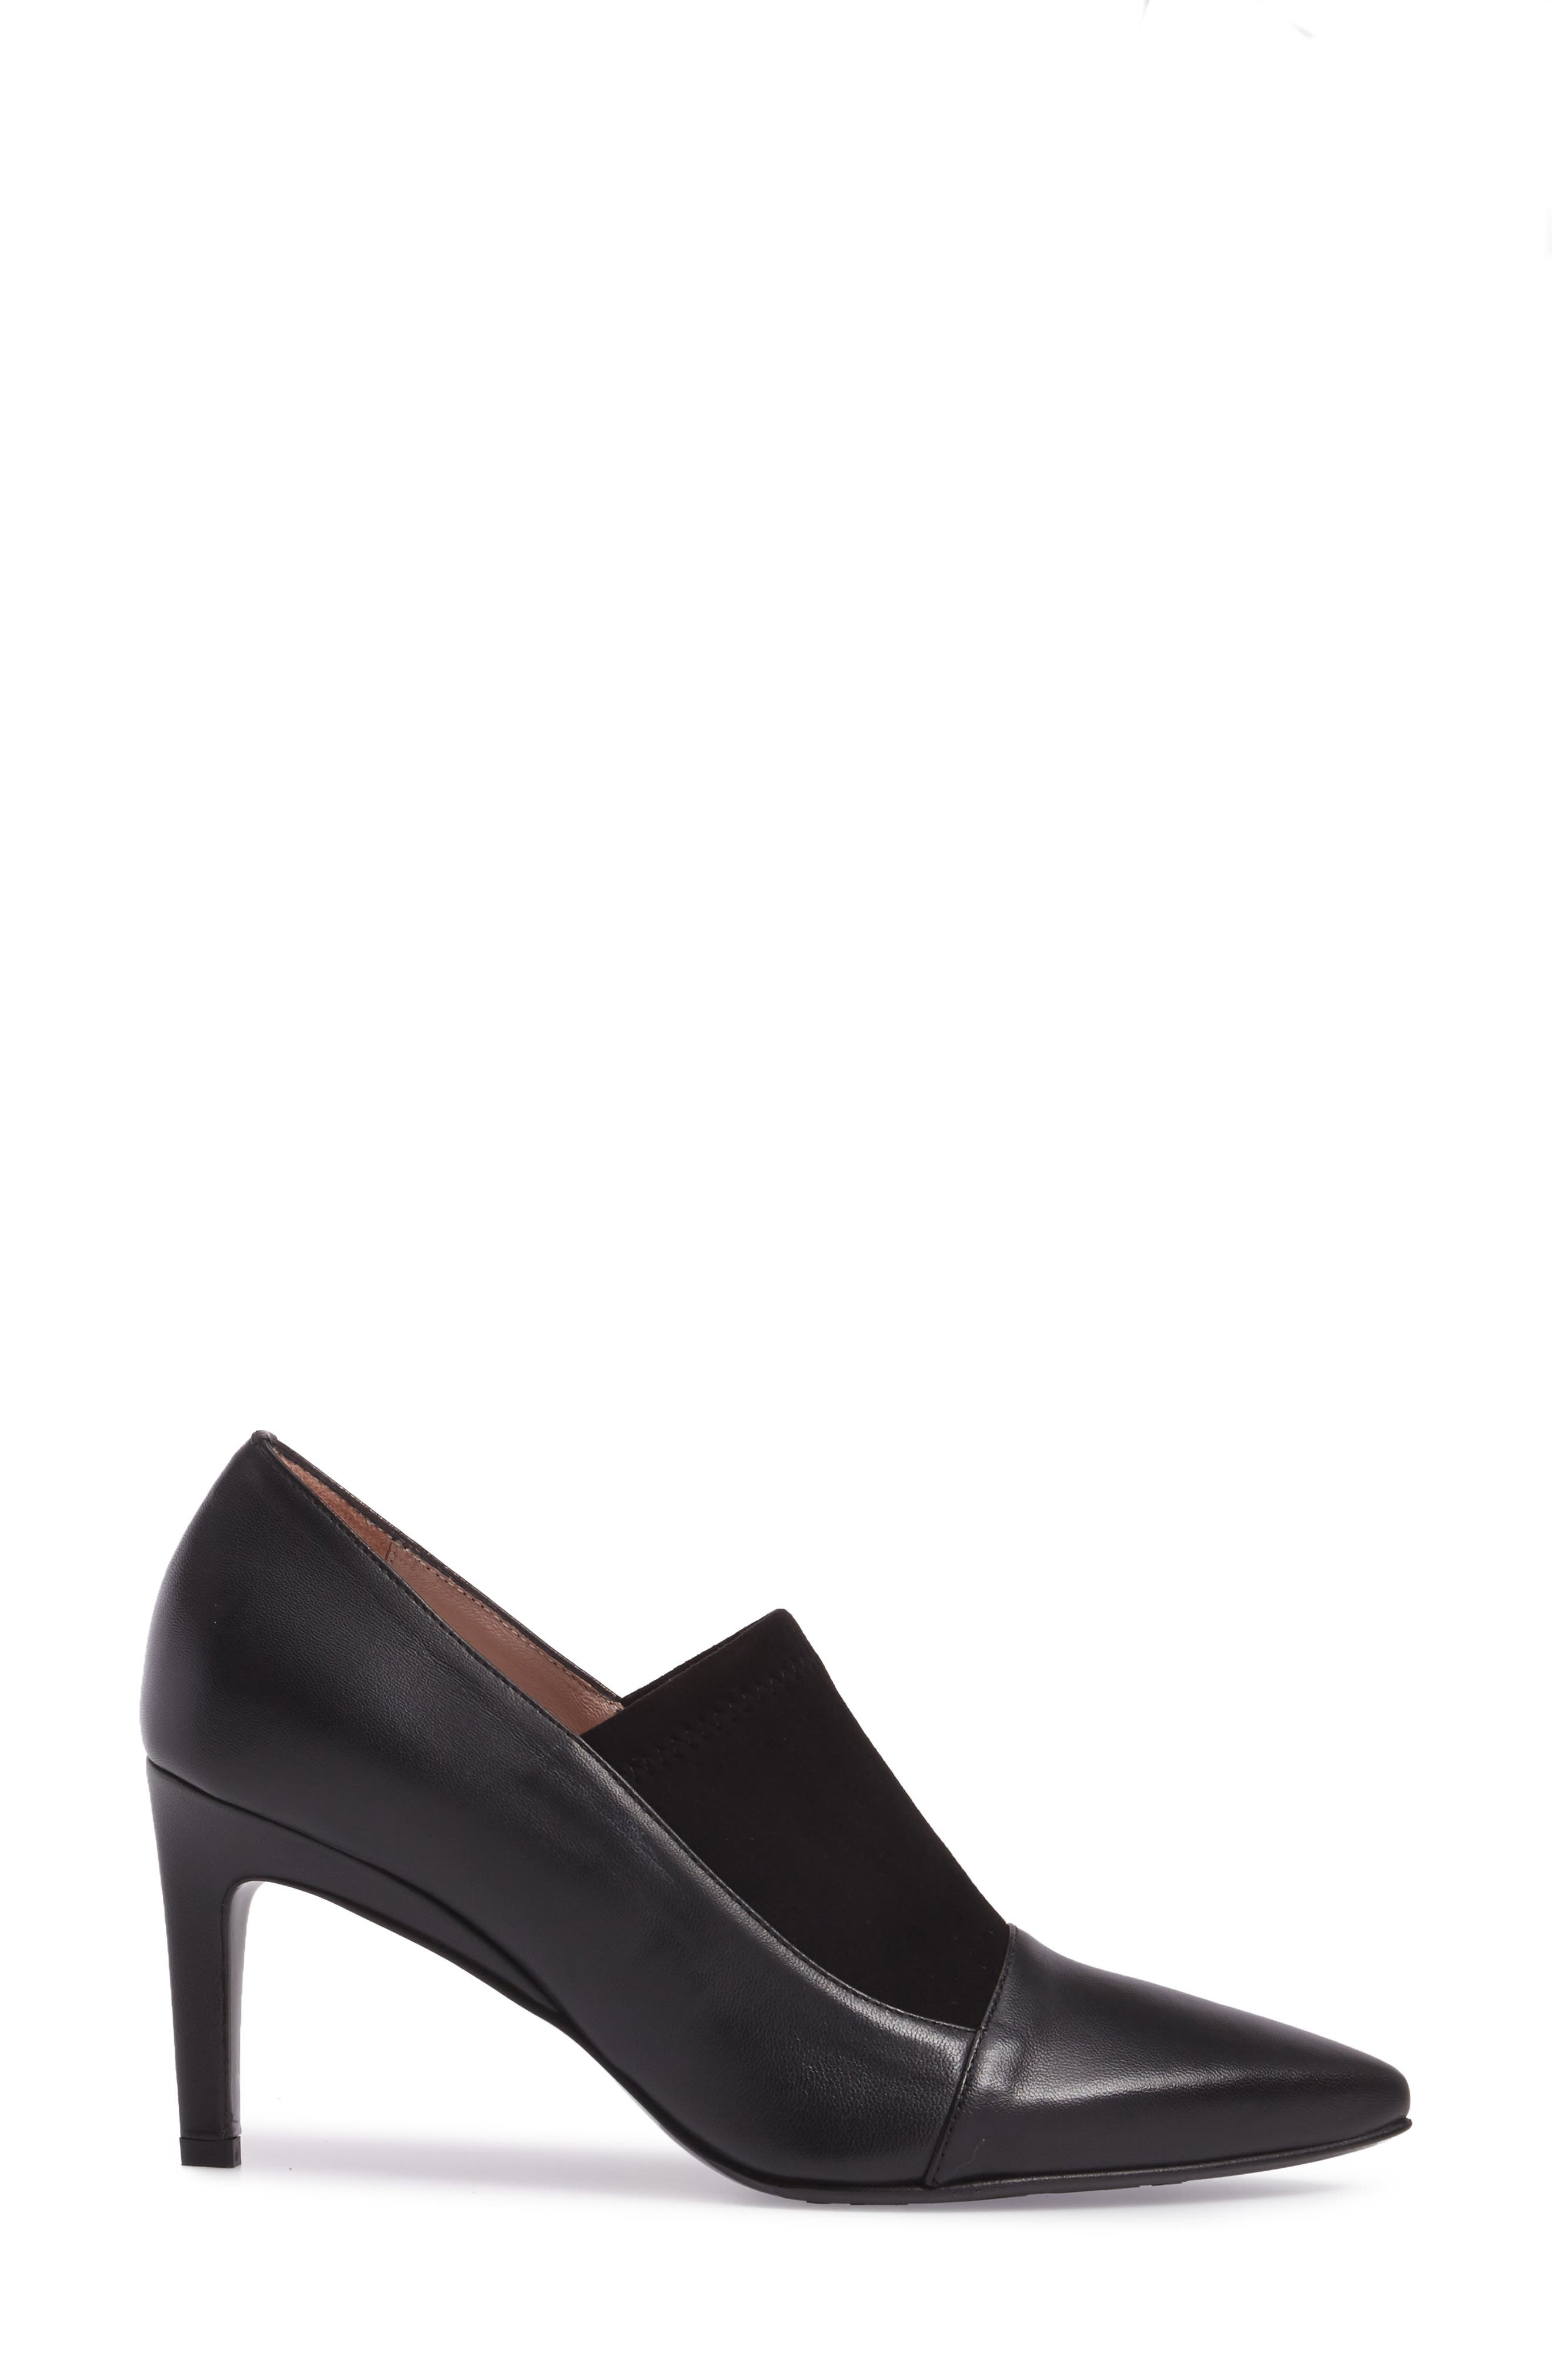 Ghita Pointy Toe Pump,                             Alternate thumbnail 3, color,                             004